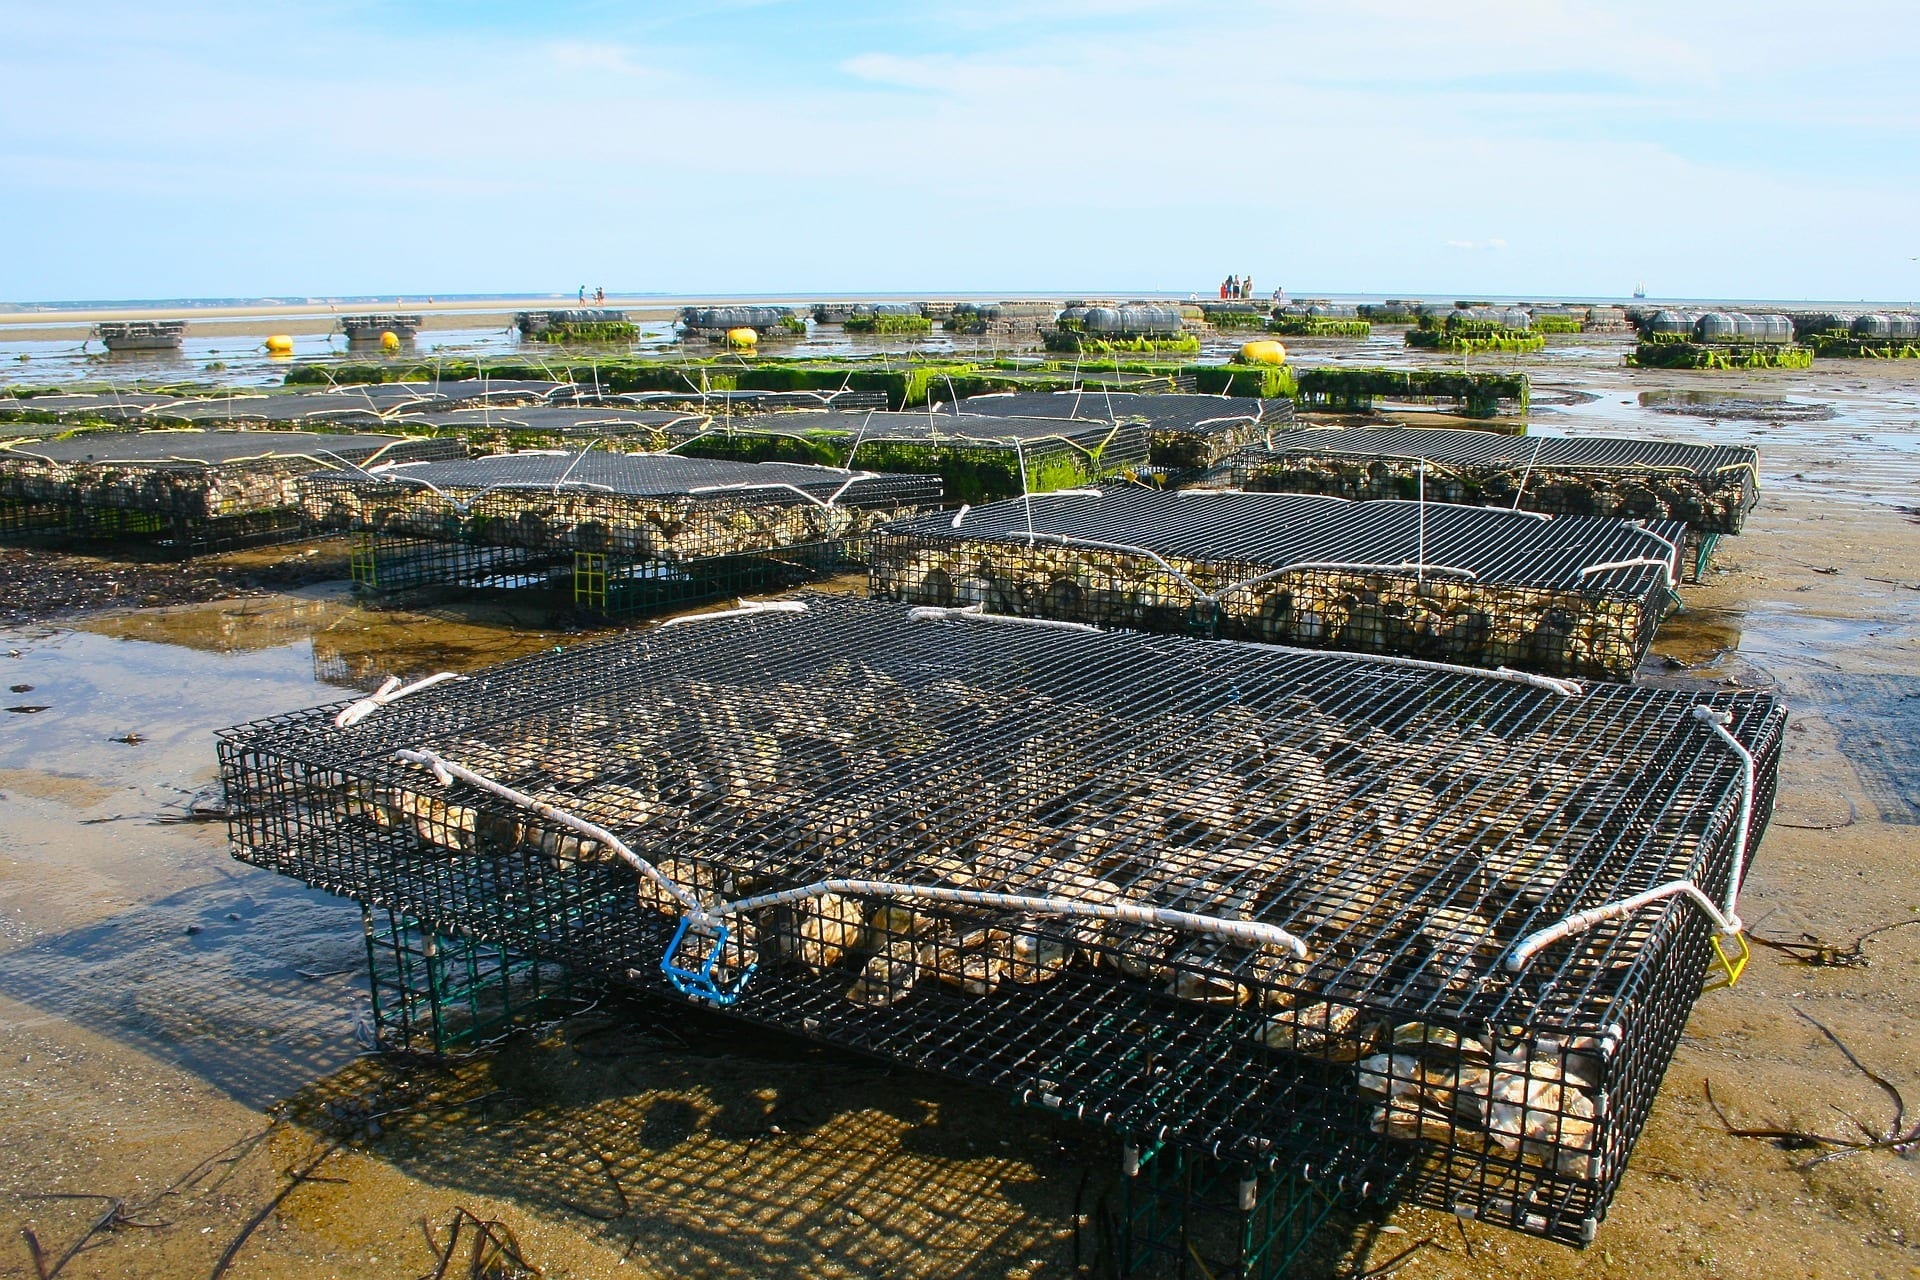 oyster farm sustainable aquaculture